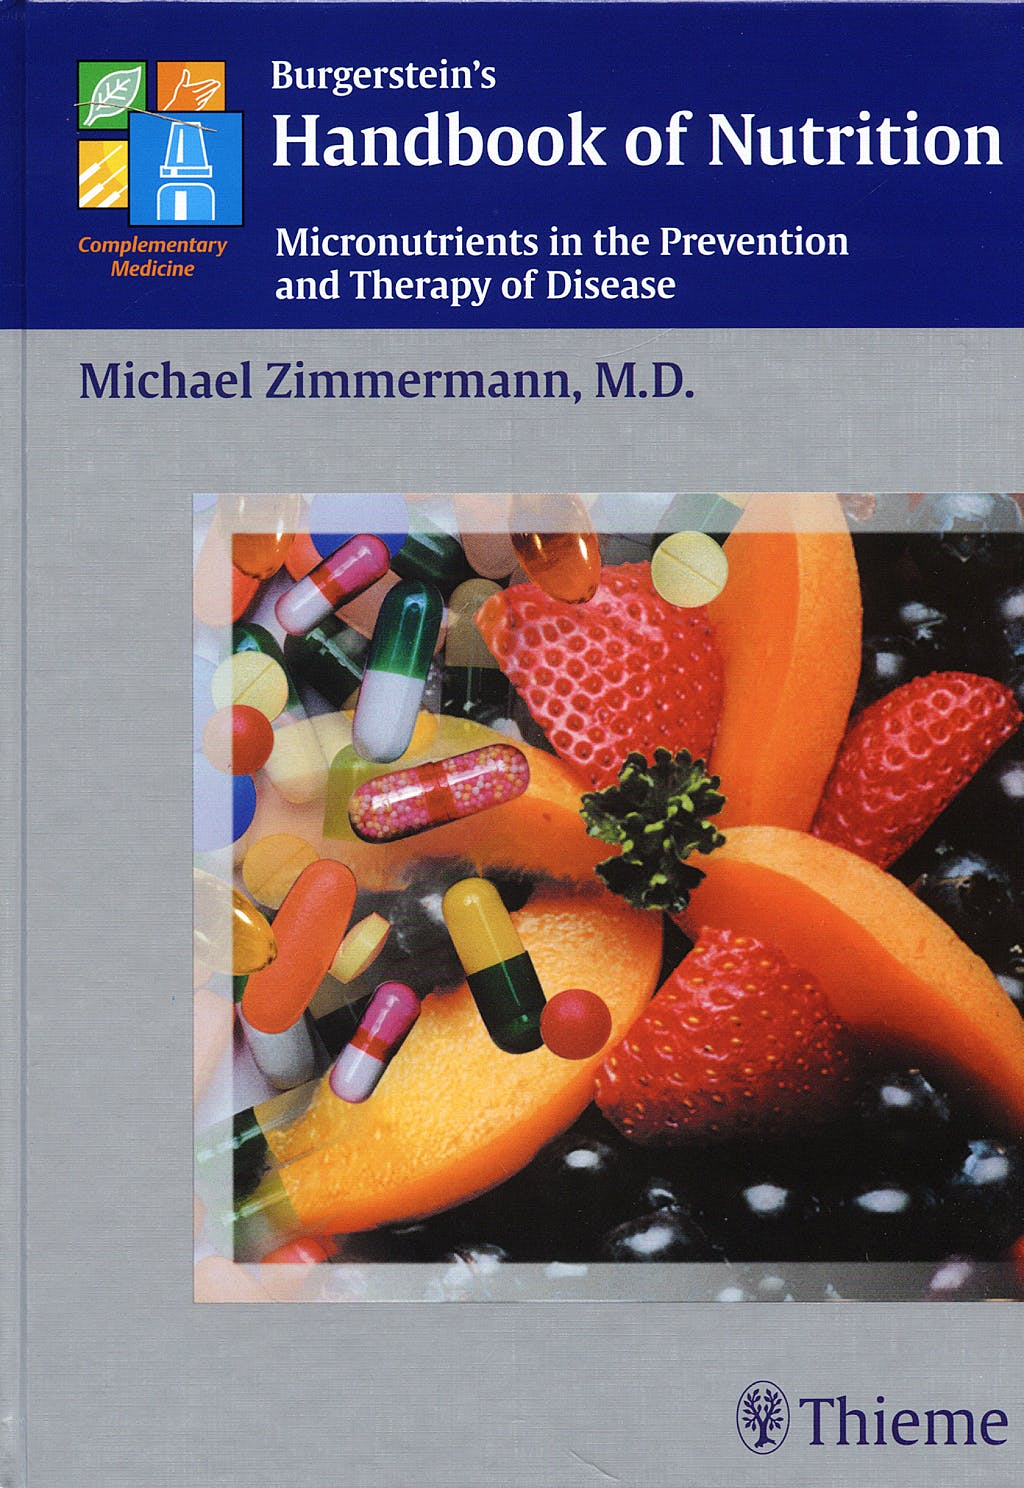 Portada del libro 9783131279514 Burgerstein's Handbook of Nutrition: Micronutrients in the Prevention and Therapy of Disease